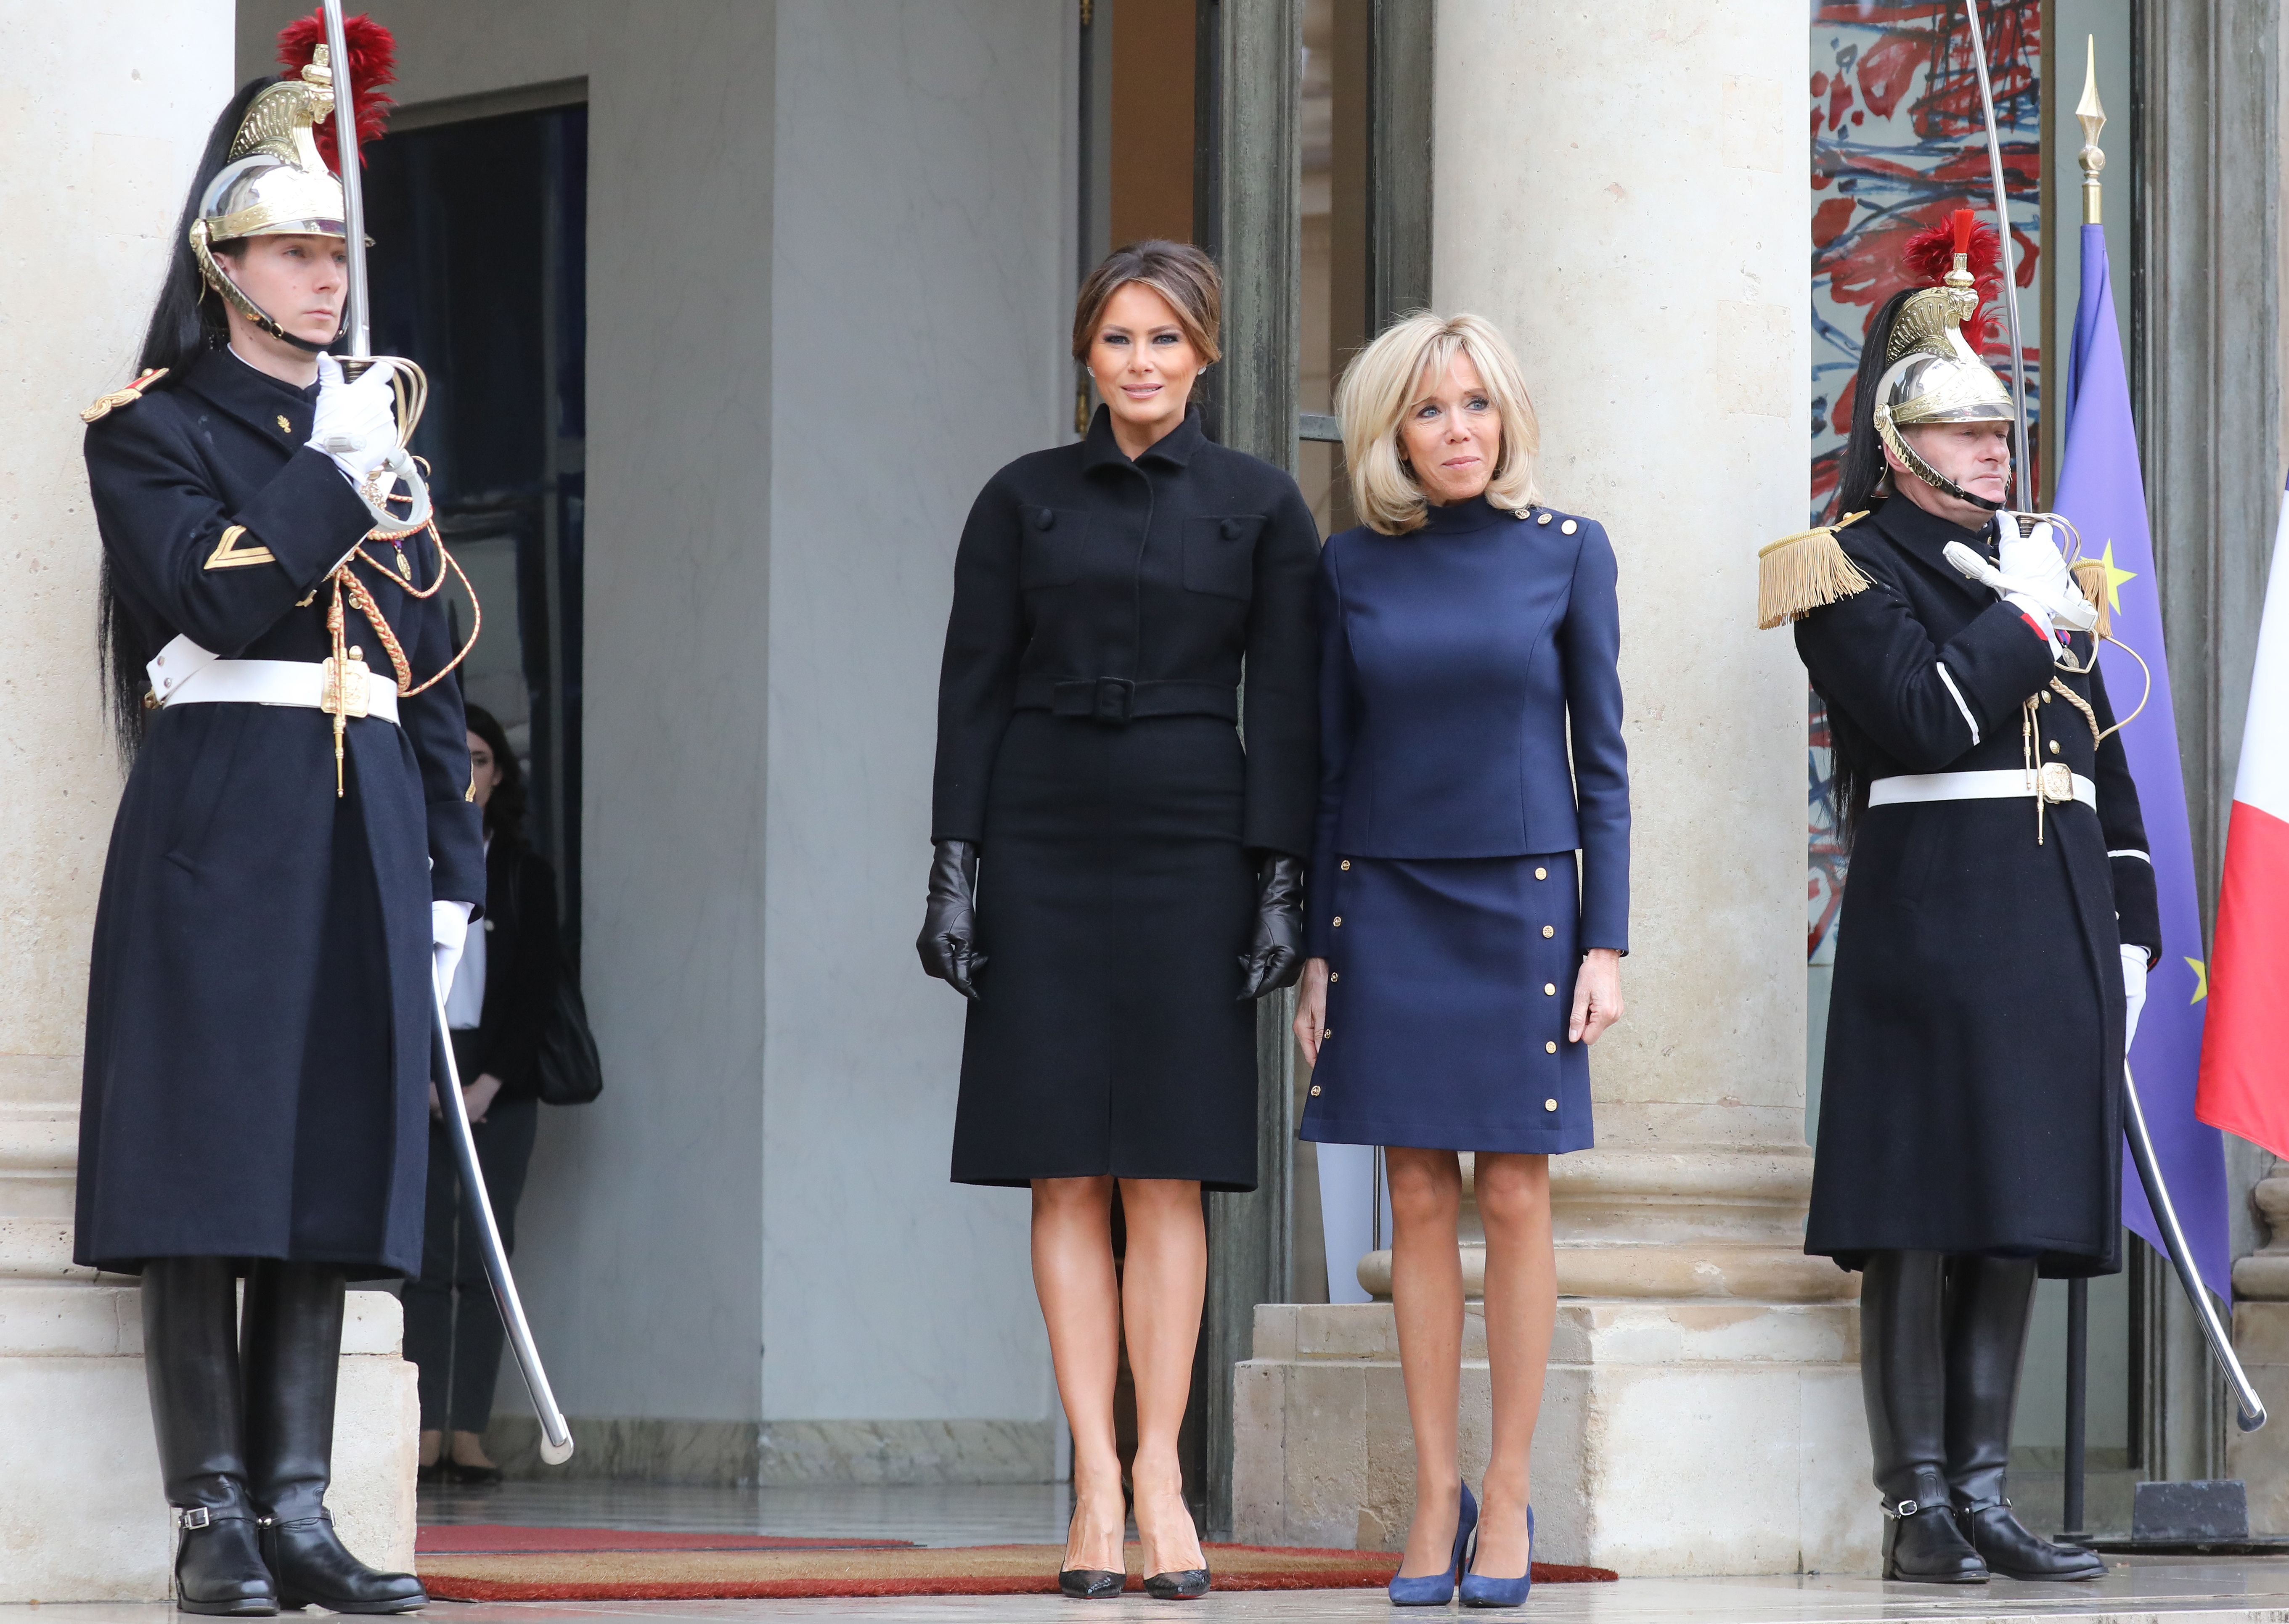 Melania Trump and Brigitte Macron stand side-by-side before entering the Elysee Palace.